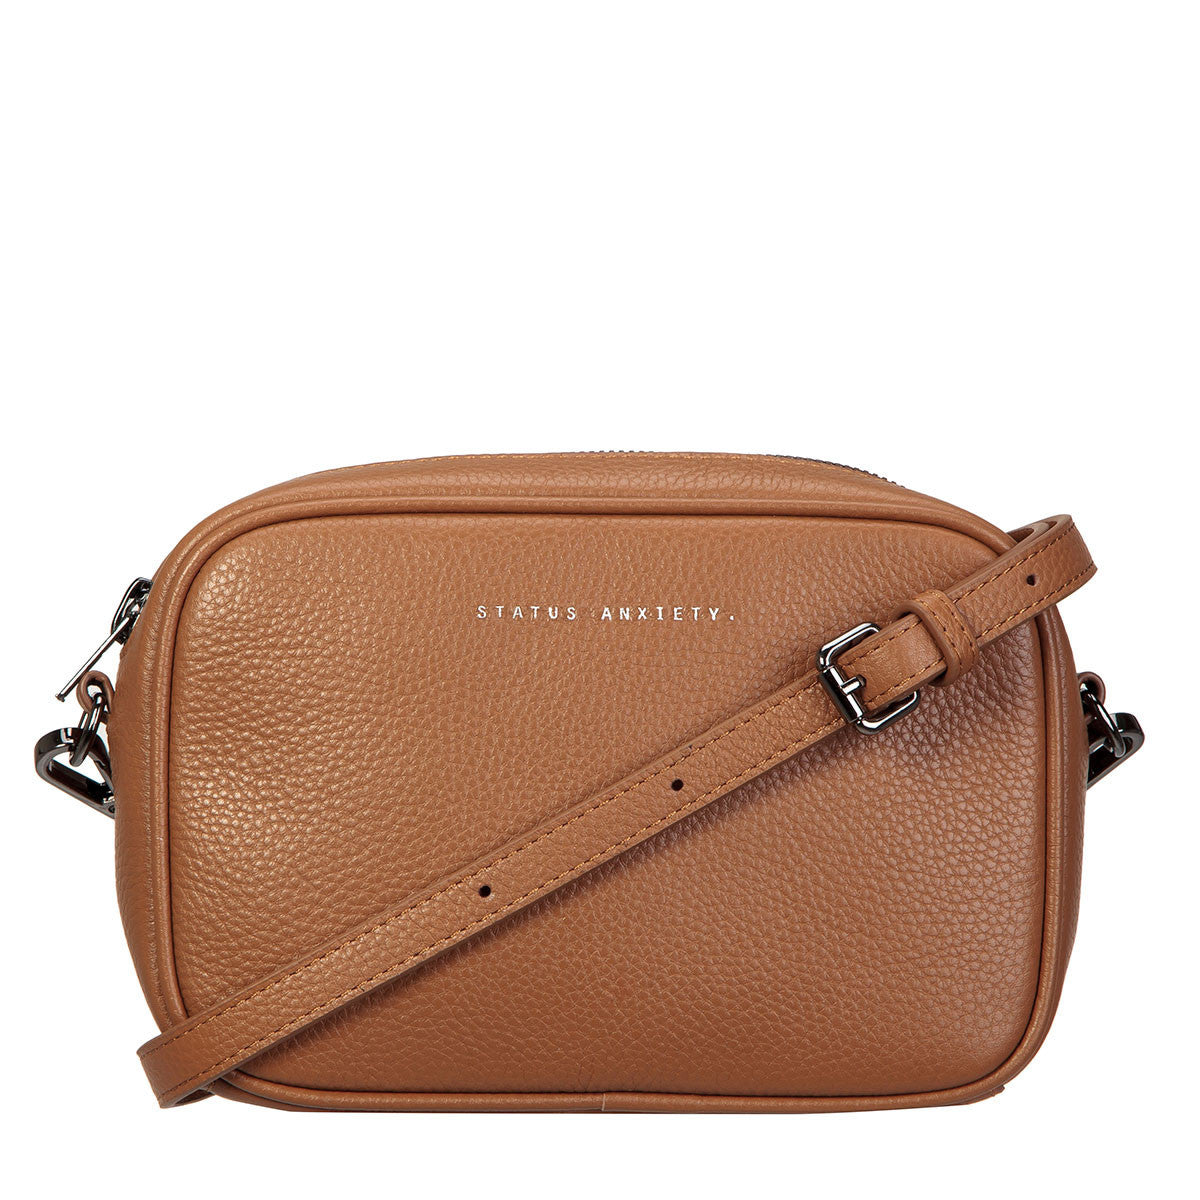 THE PLUNDER TAN LEATHER BAG FROM STATUS ANXIETY 2